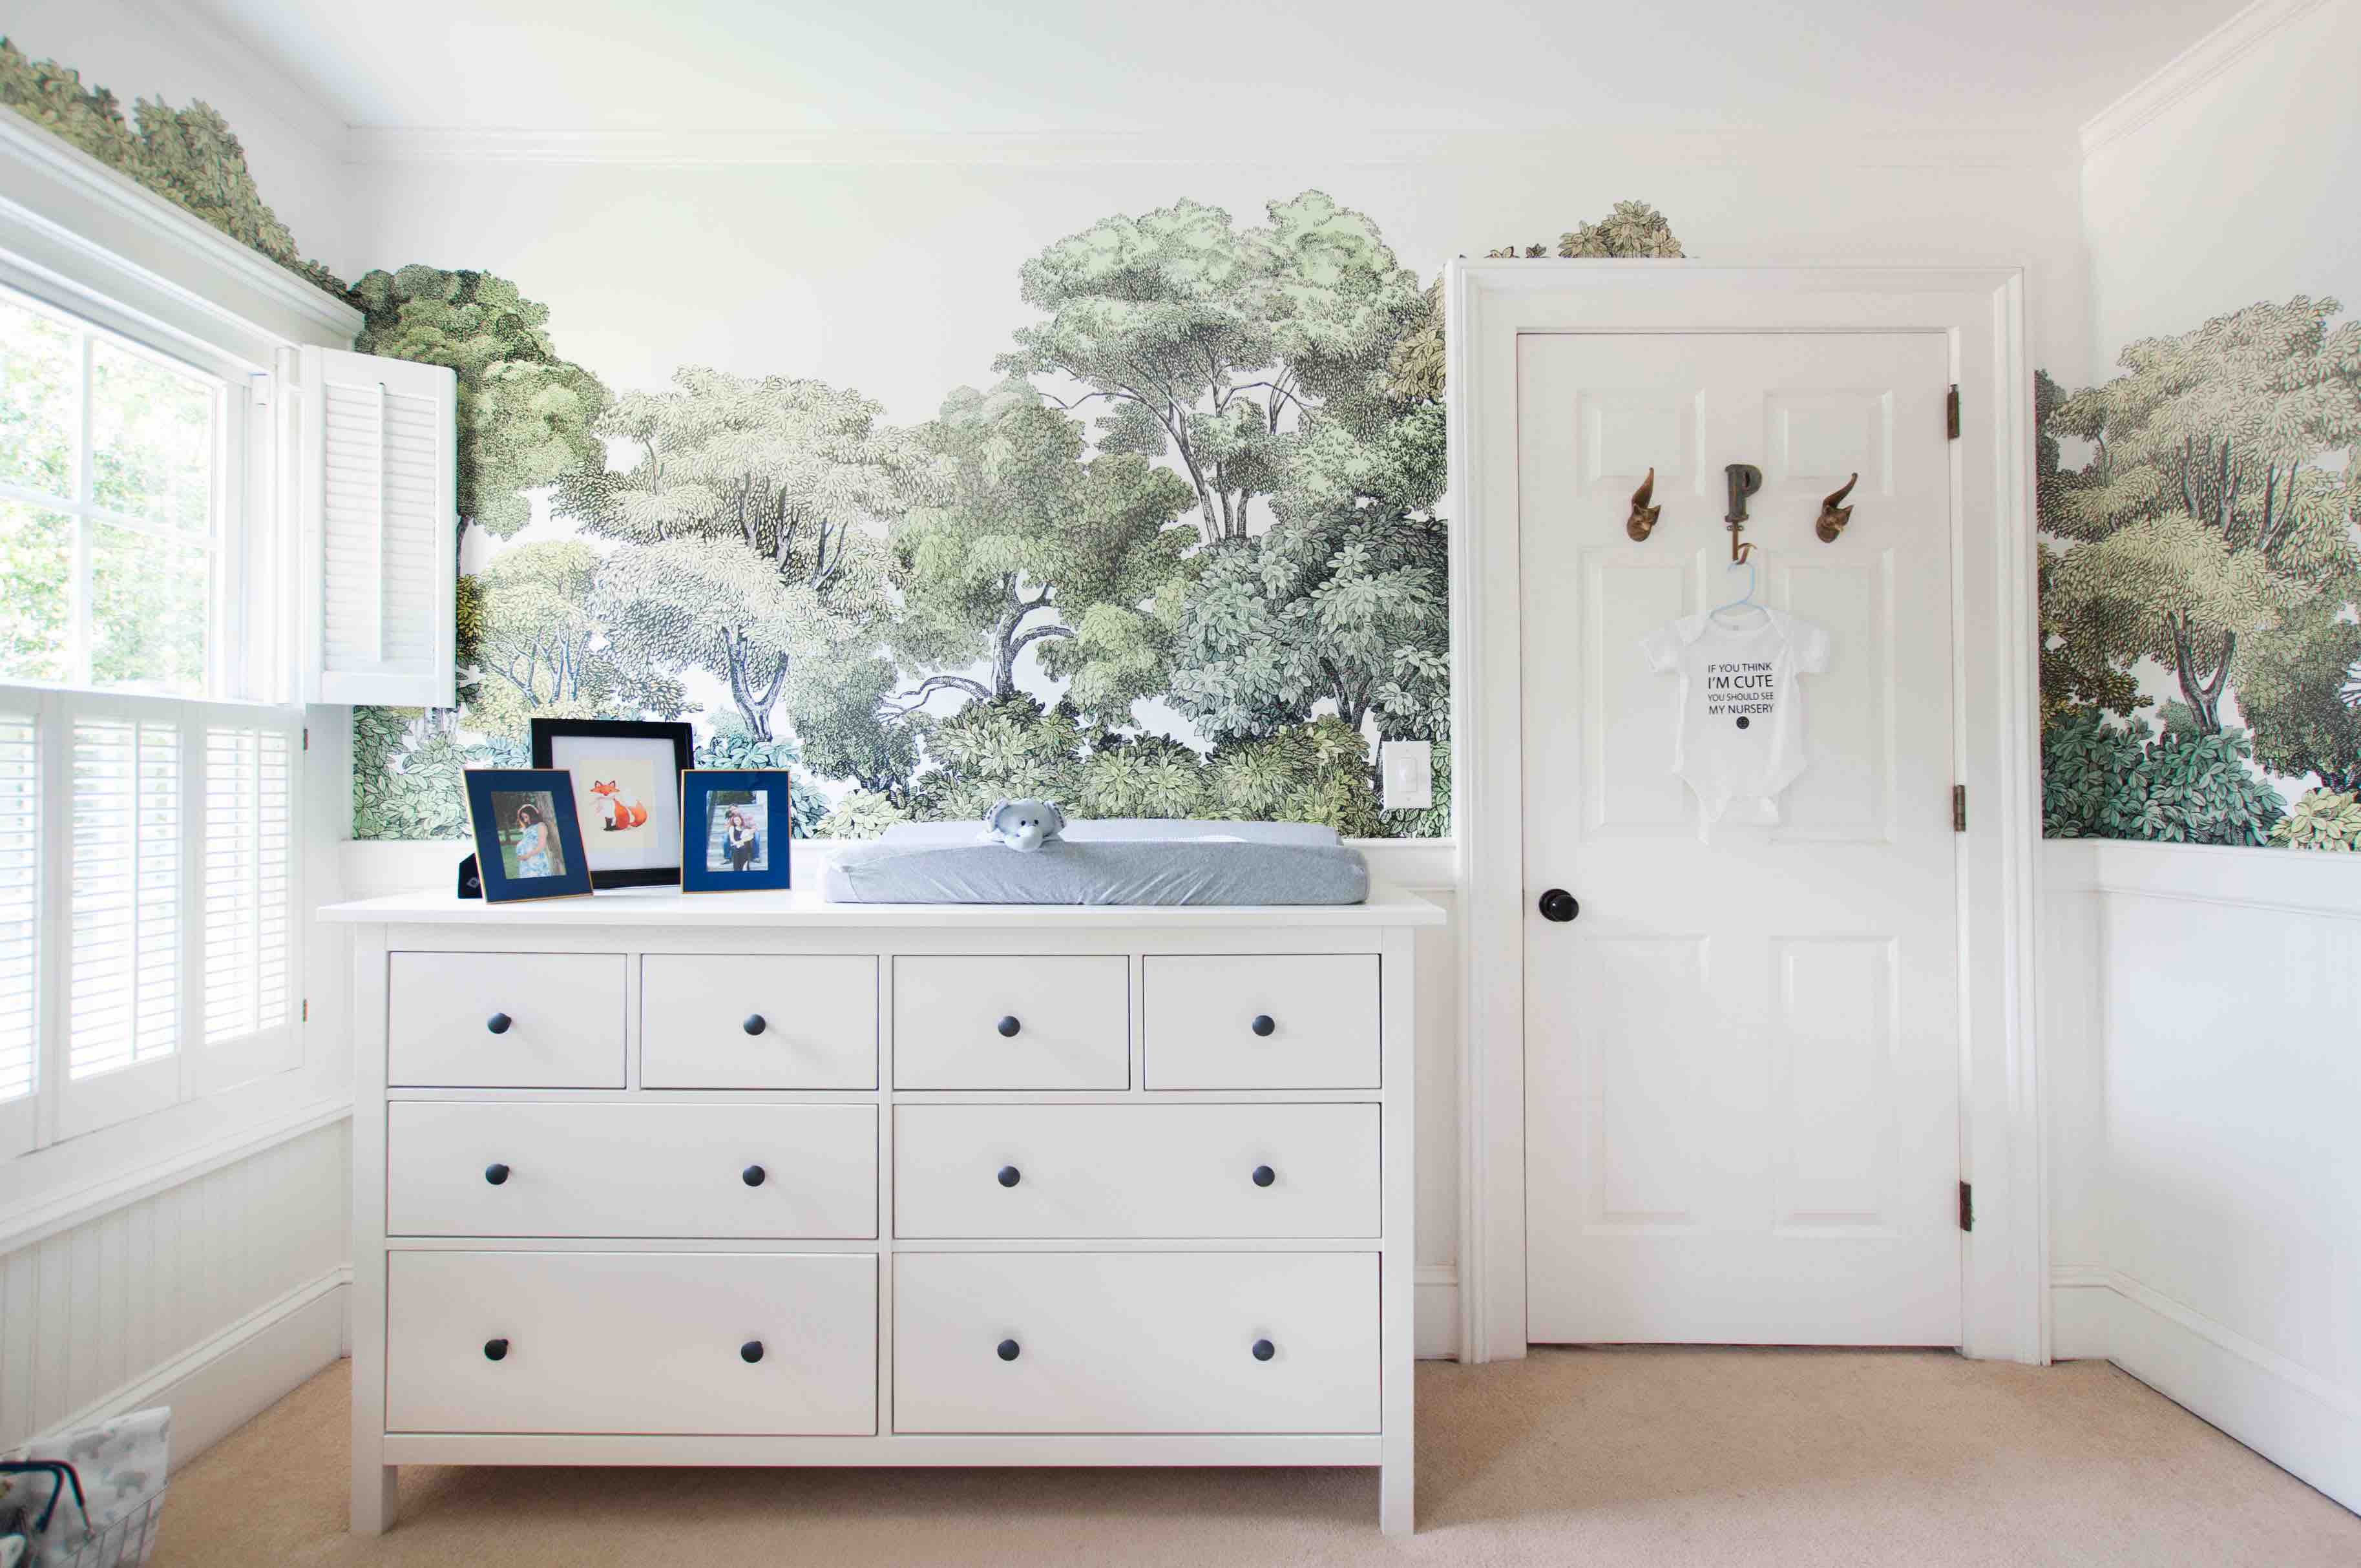 Nursery design tip 2: Design outside the box